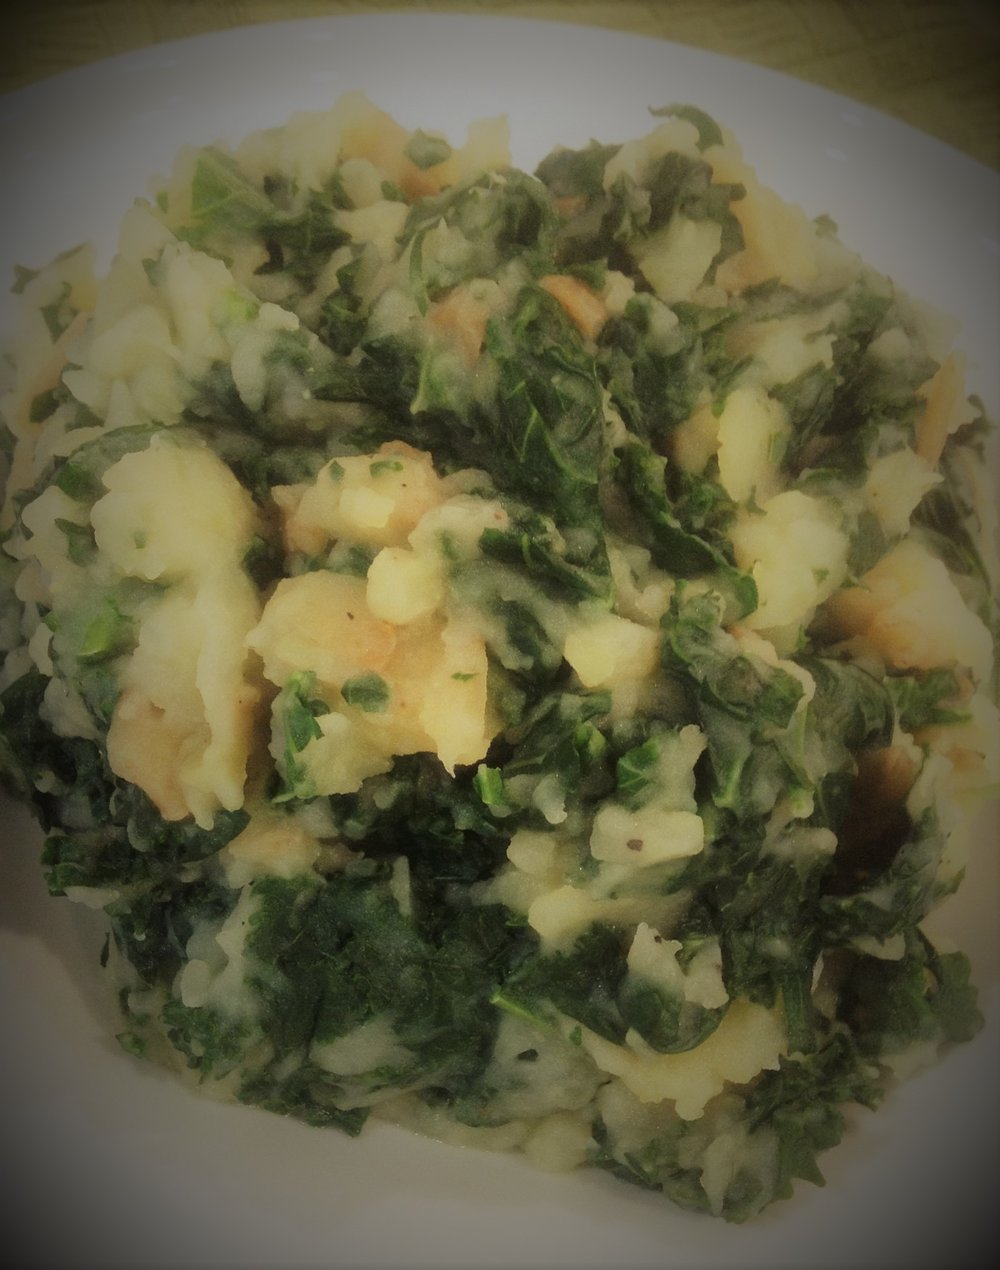 Irish Potato Kale Colcannon - Healthy, Plant-Based, Oil-Free, Gluten-Free, Easy Vegan Recipe